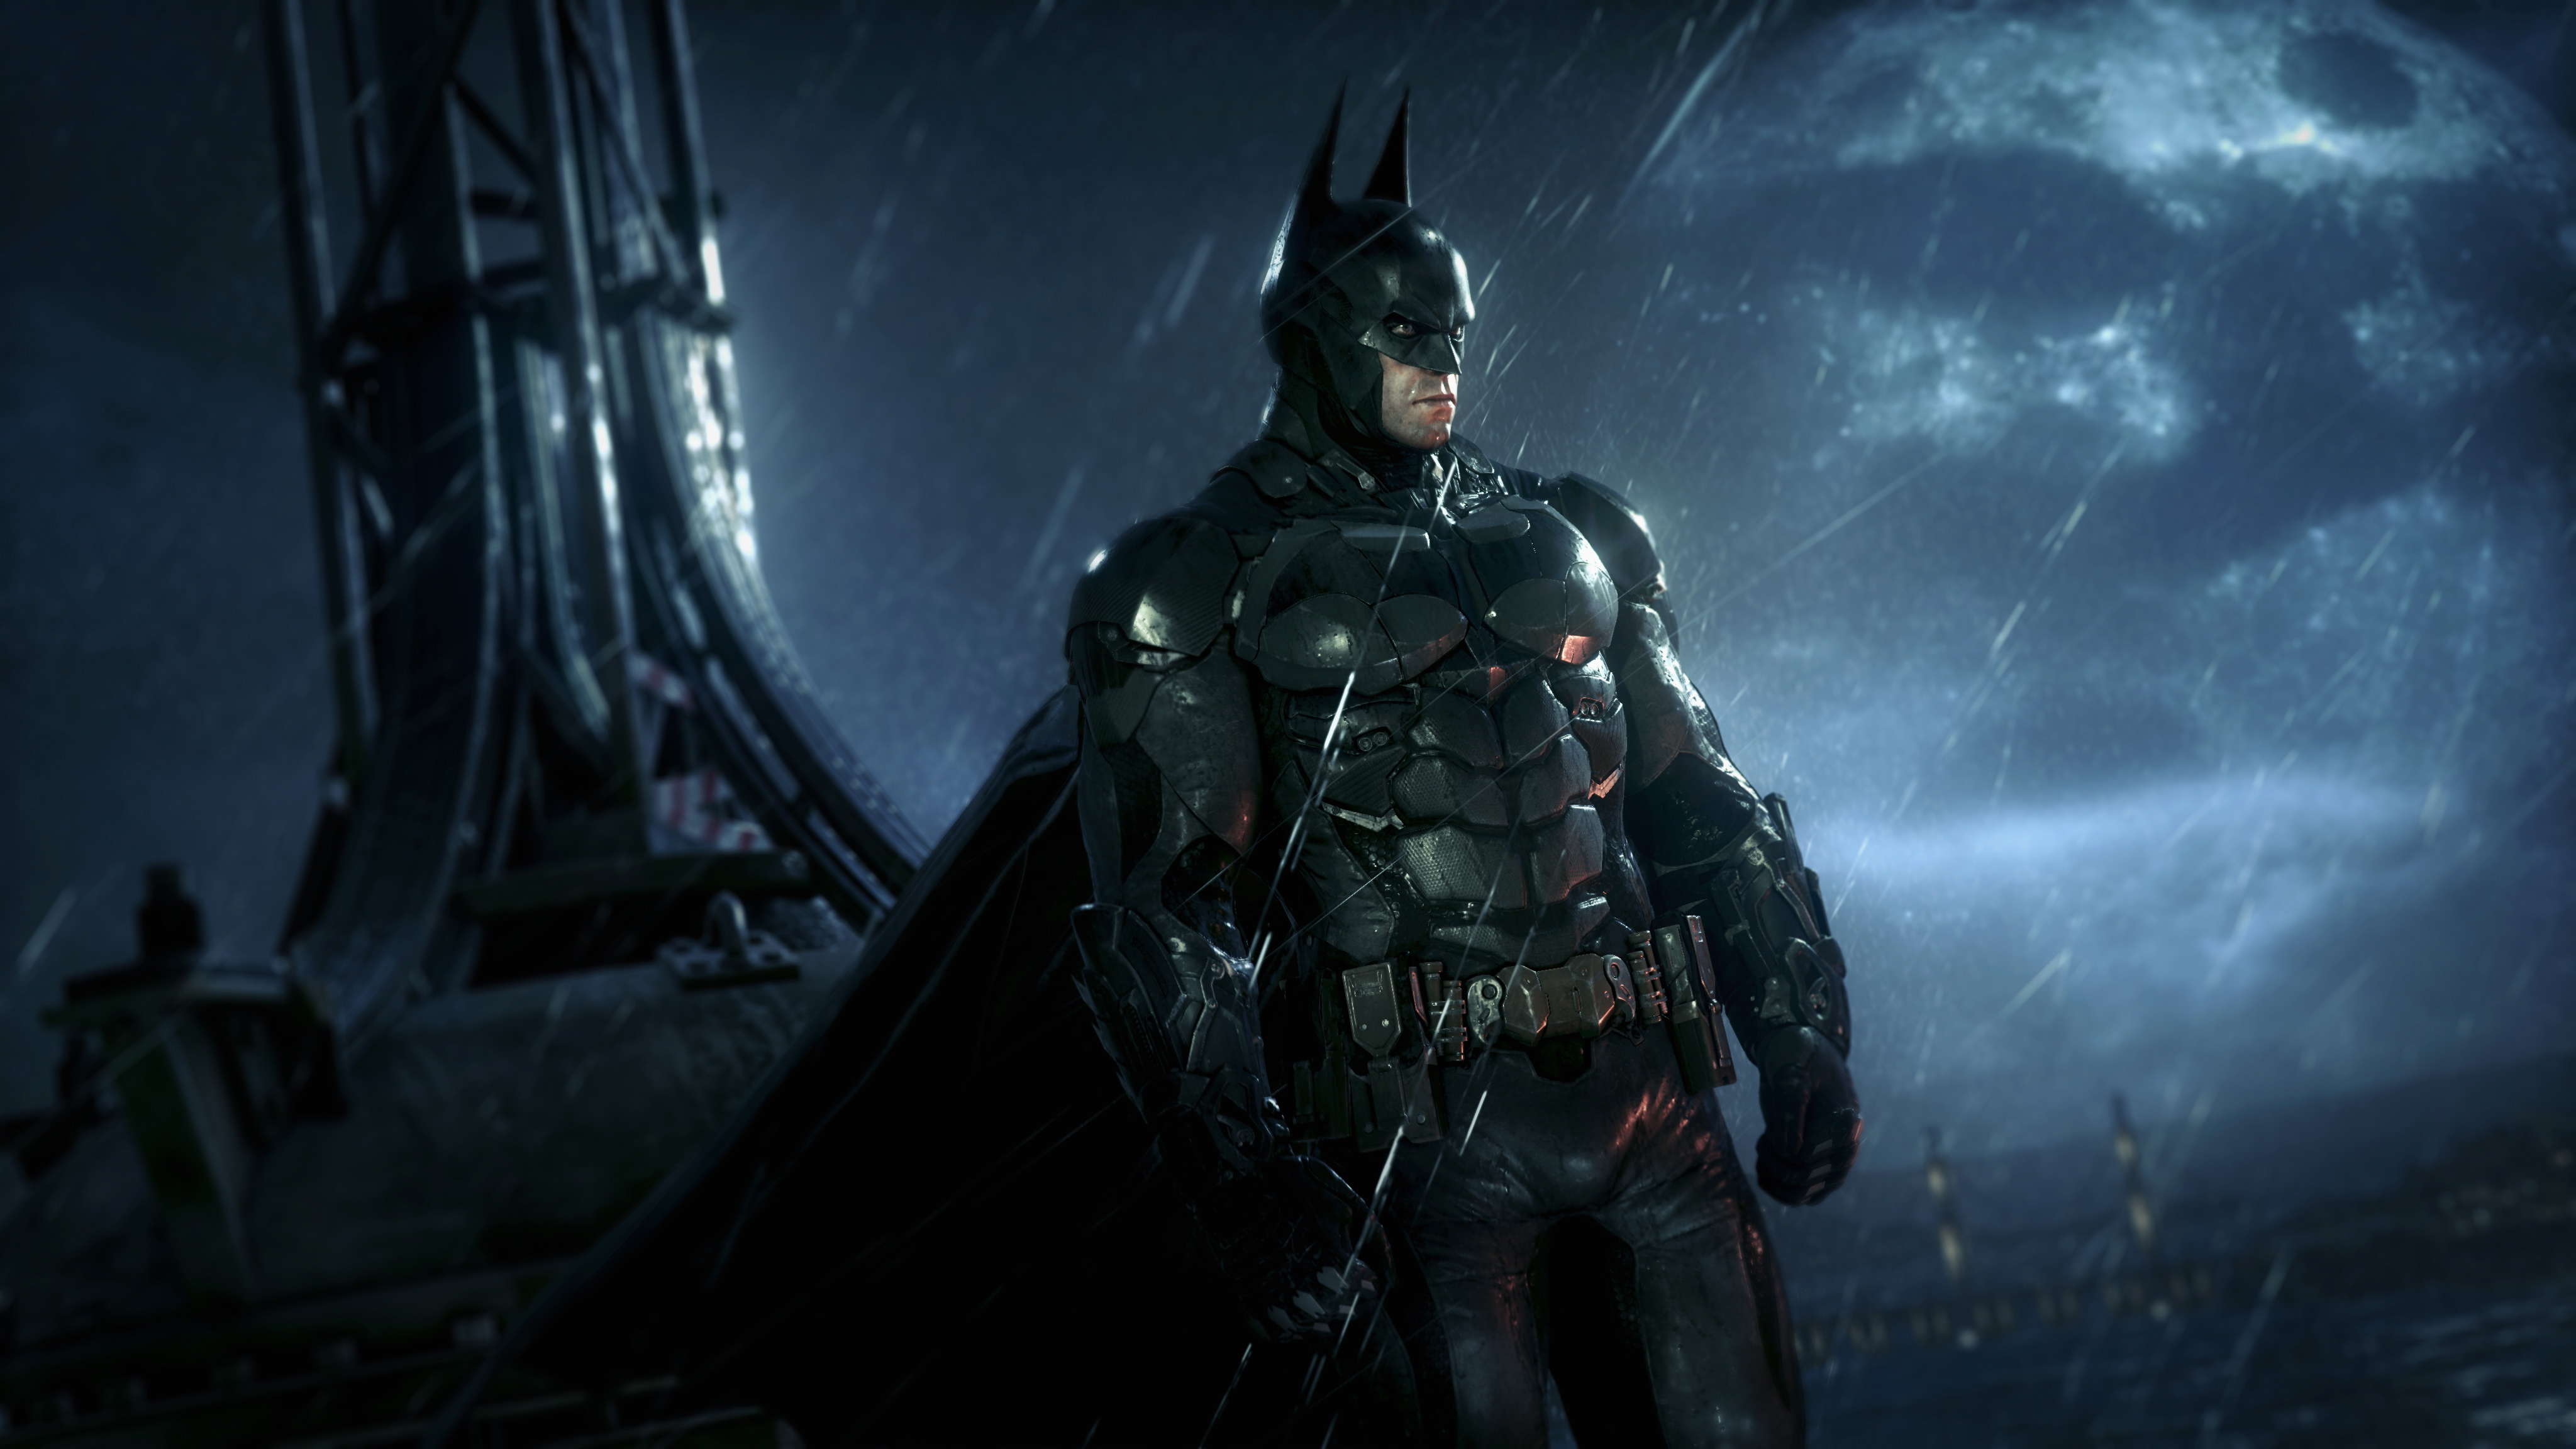 New Batman and Harry Potter games were set for E3 2020, says report